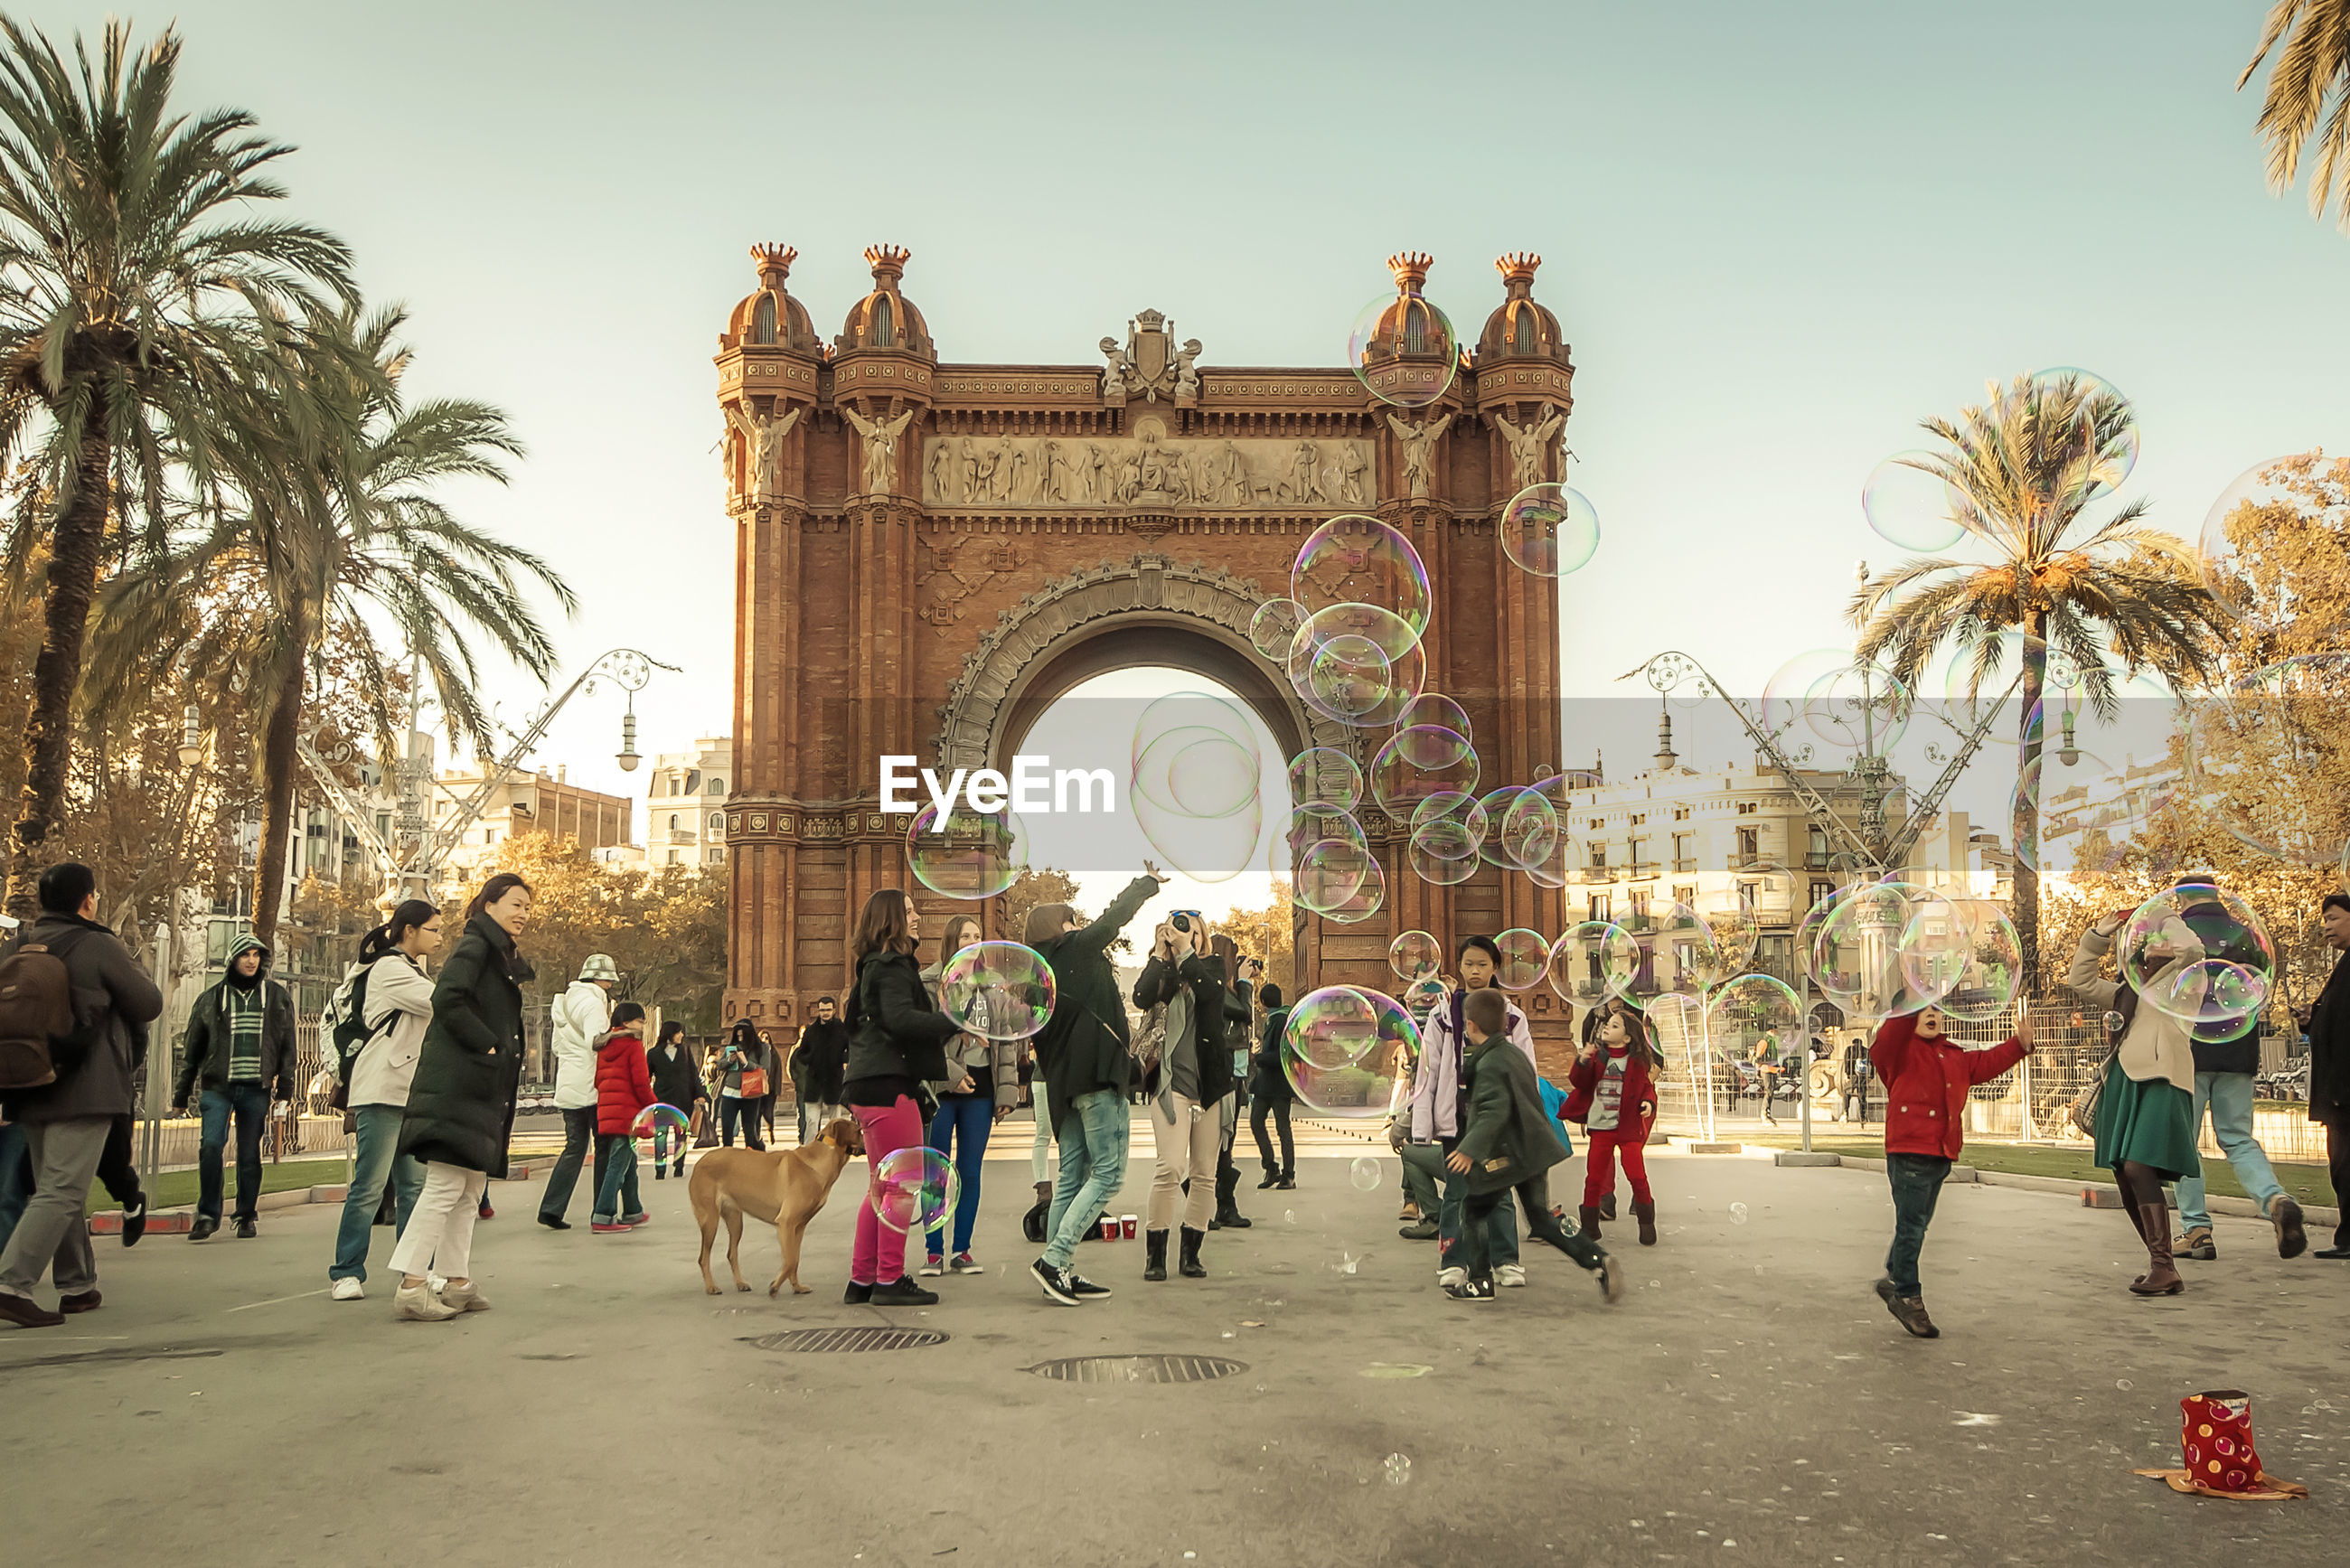 People playing with soap bubbles at arc de triomf against sky